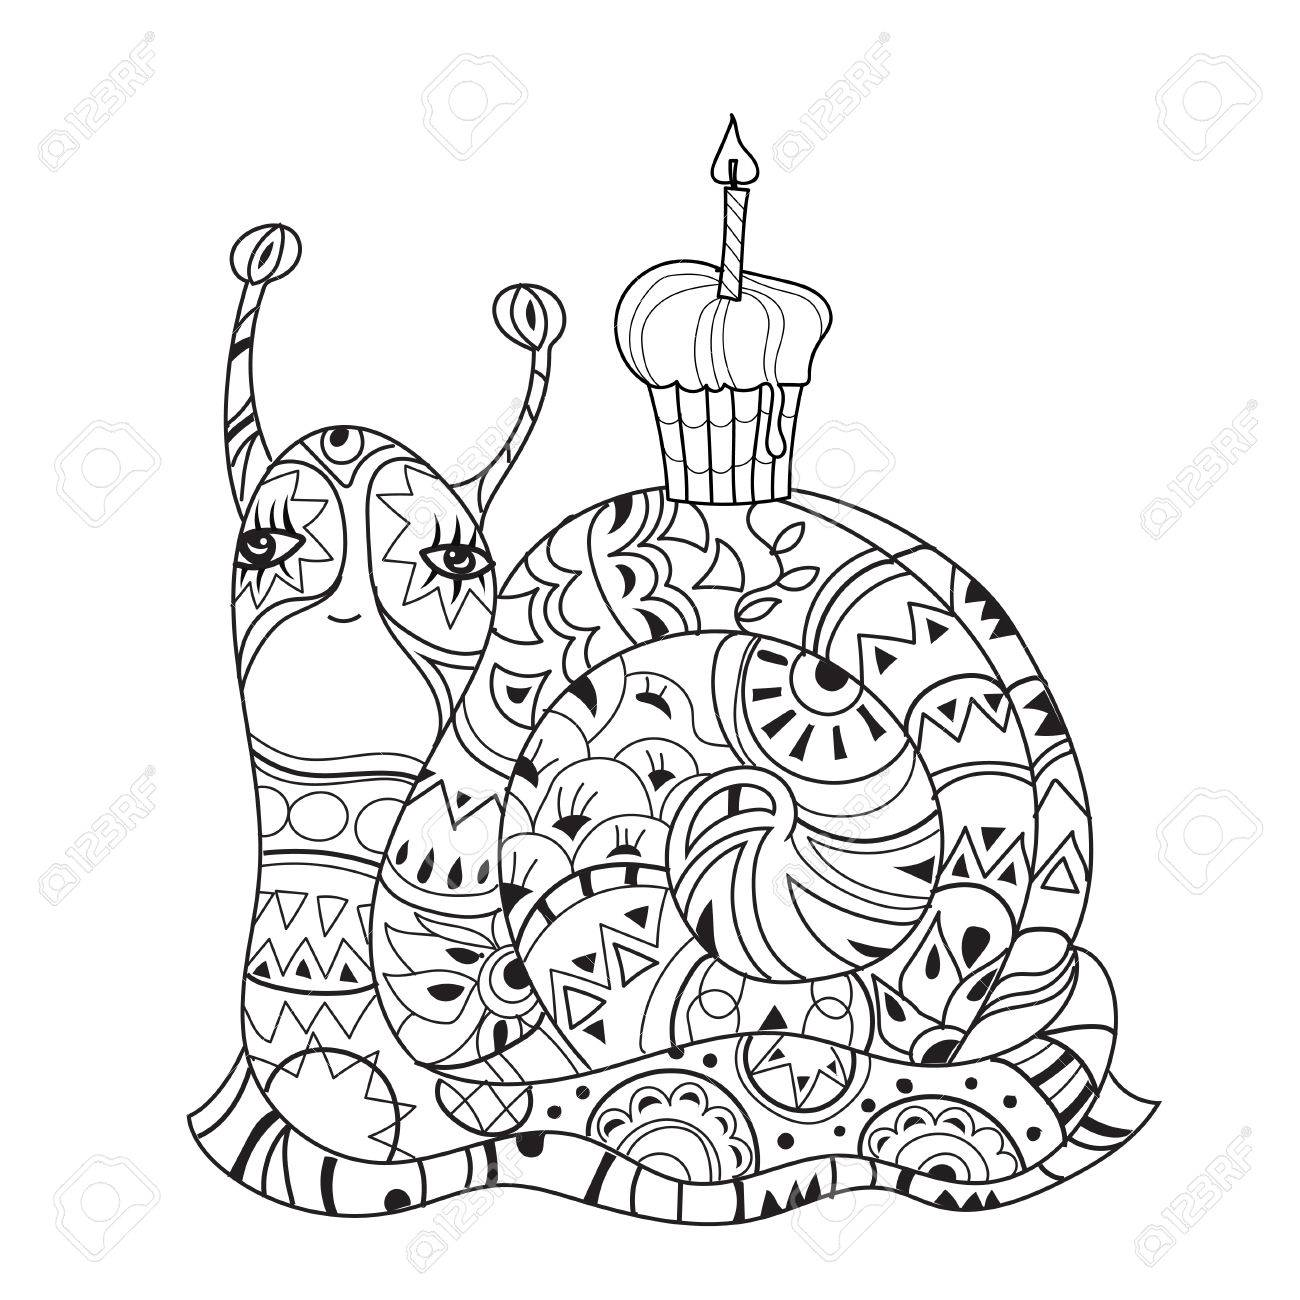 100 birthday cake drawing for birthday cake colouring pages draw cupcake with cherry cakes step by step zen art stylized snail with birthday cake hand drawn vector sciox Image collections